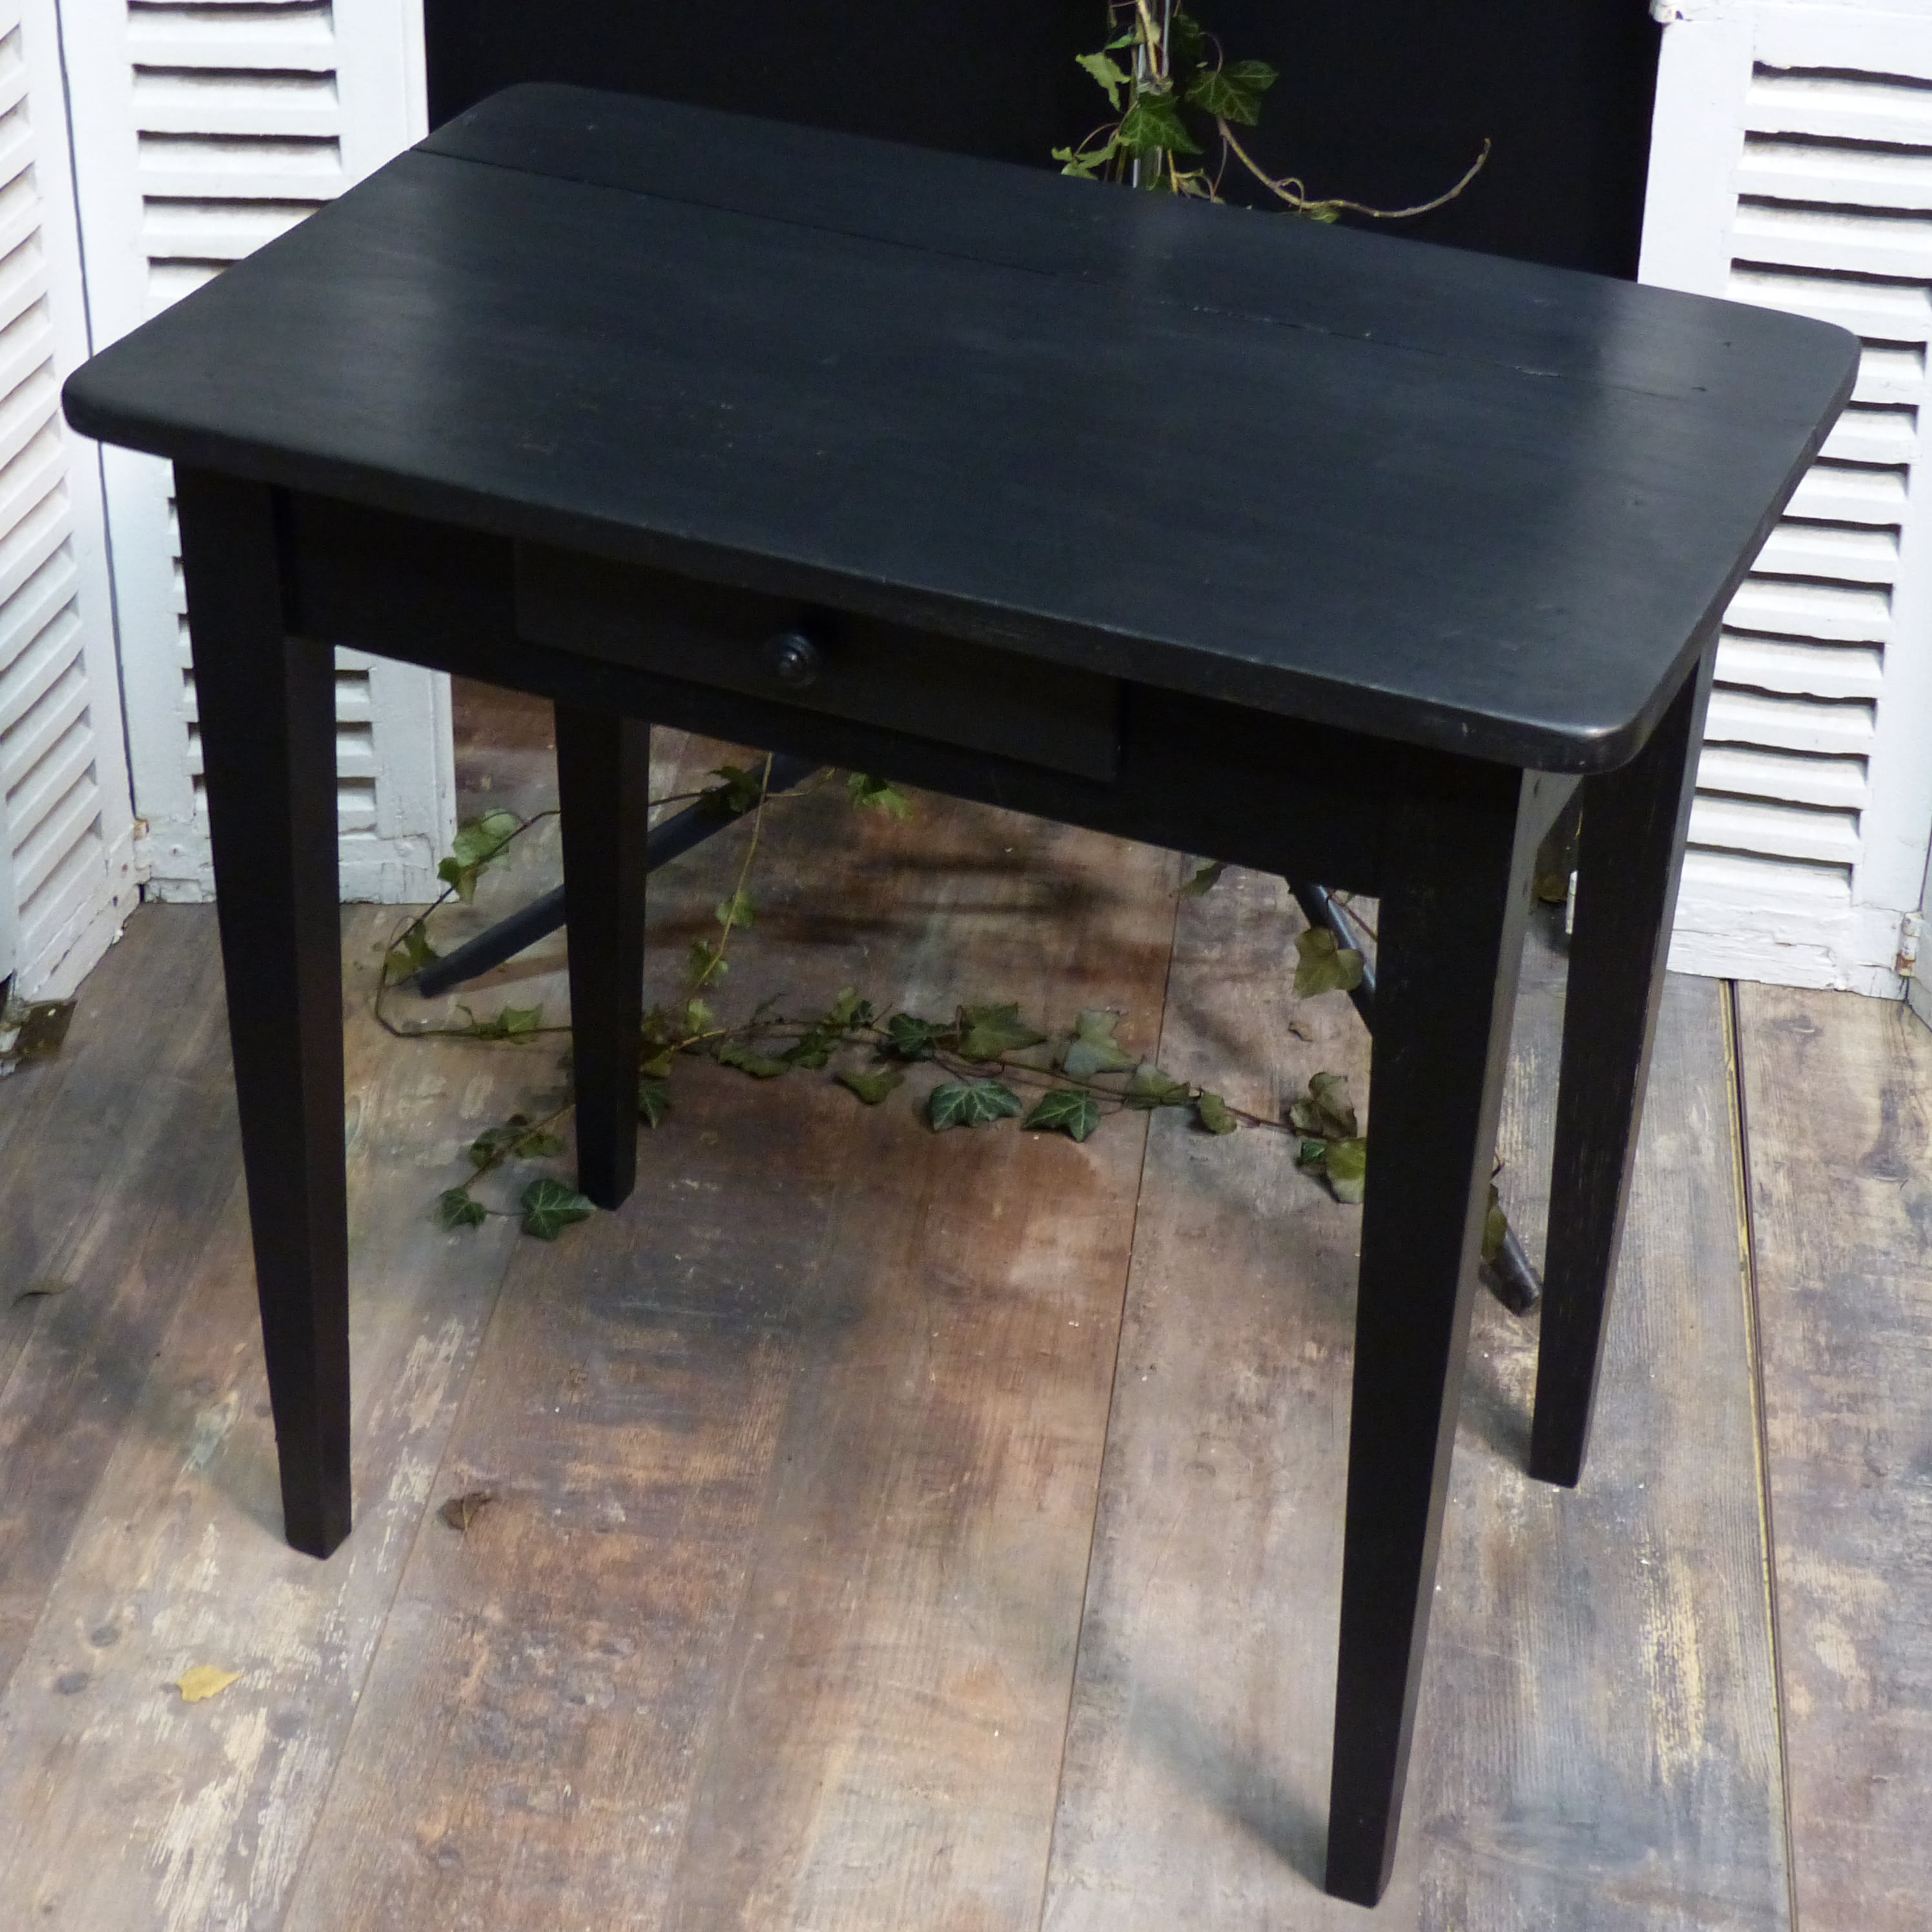 petit bureau noir patin lignedebrocante brocante en ligne chine pour vous meubles vintage. Black Bedroom Furniture Sets. Home Design Ideas